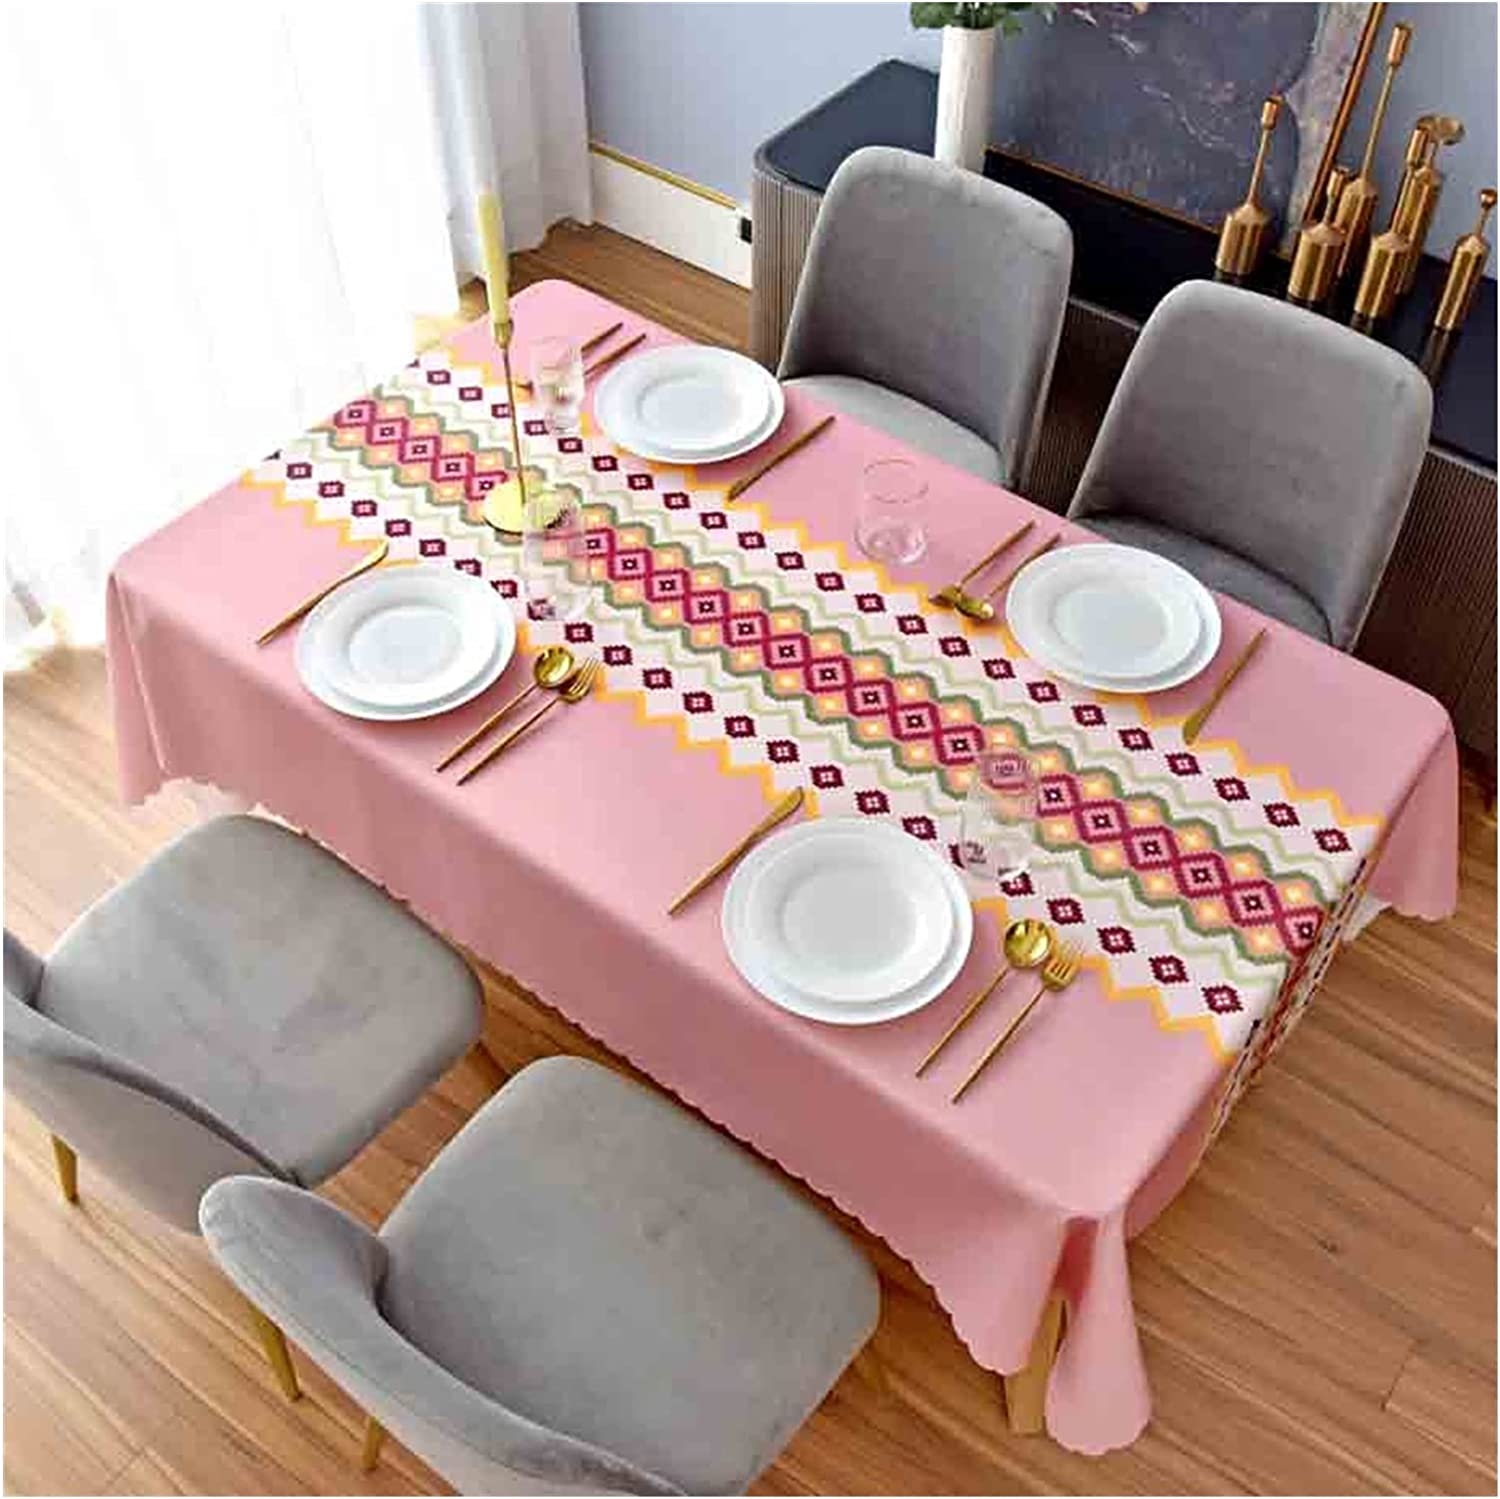 Birds depot Max 73% OFF Living Room Dining Table Resist Tablecloth Decorative Wear